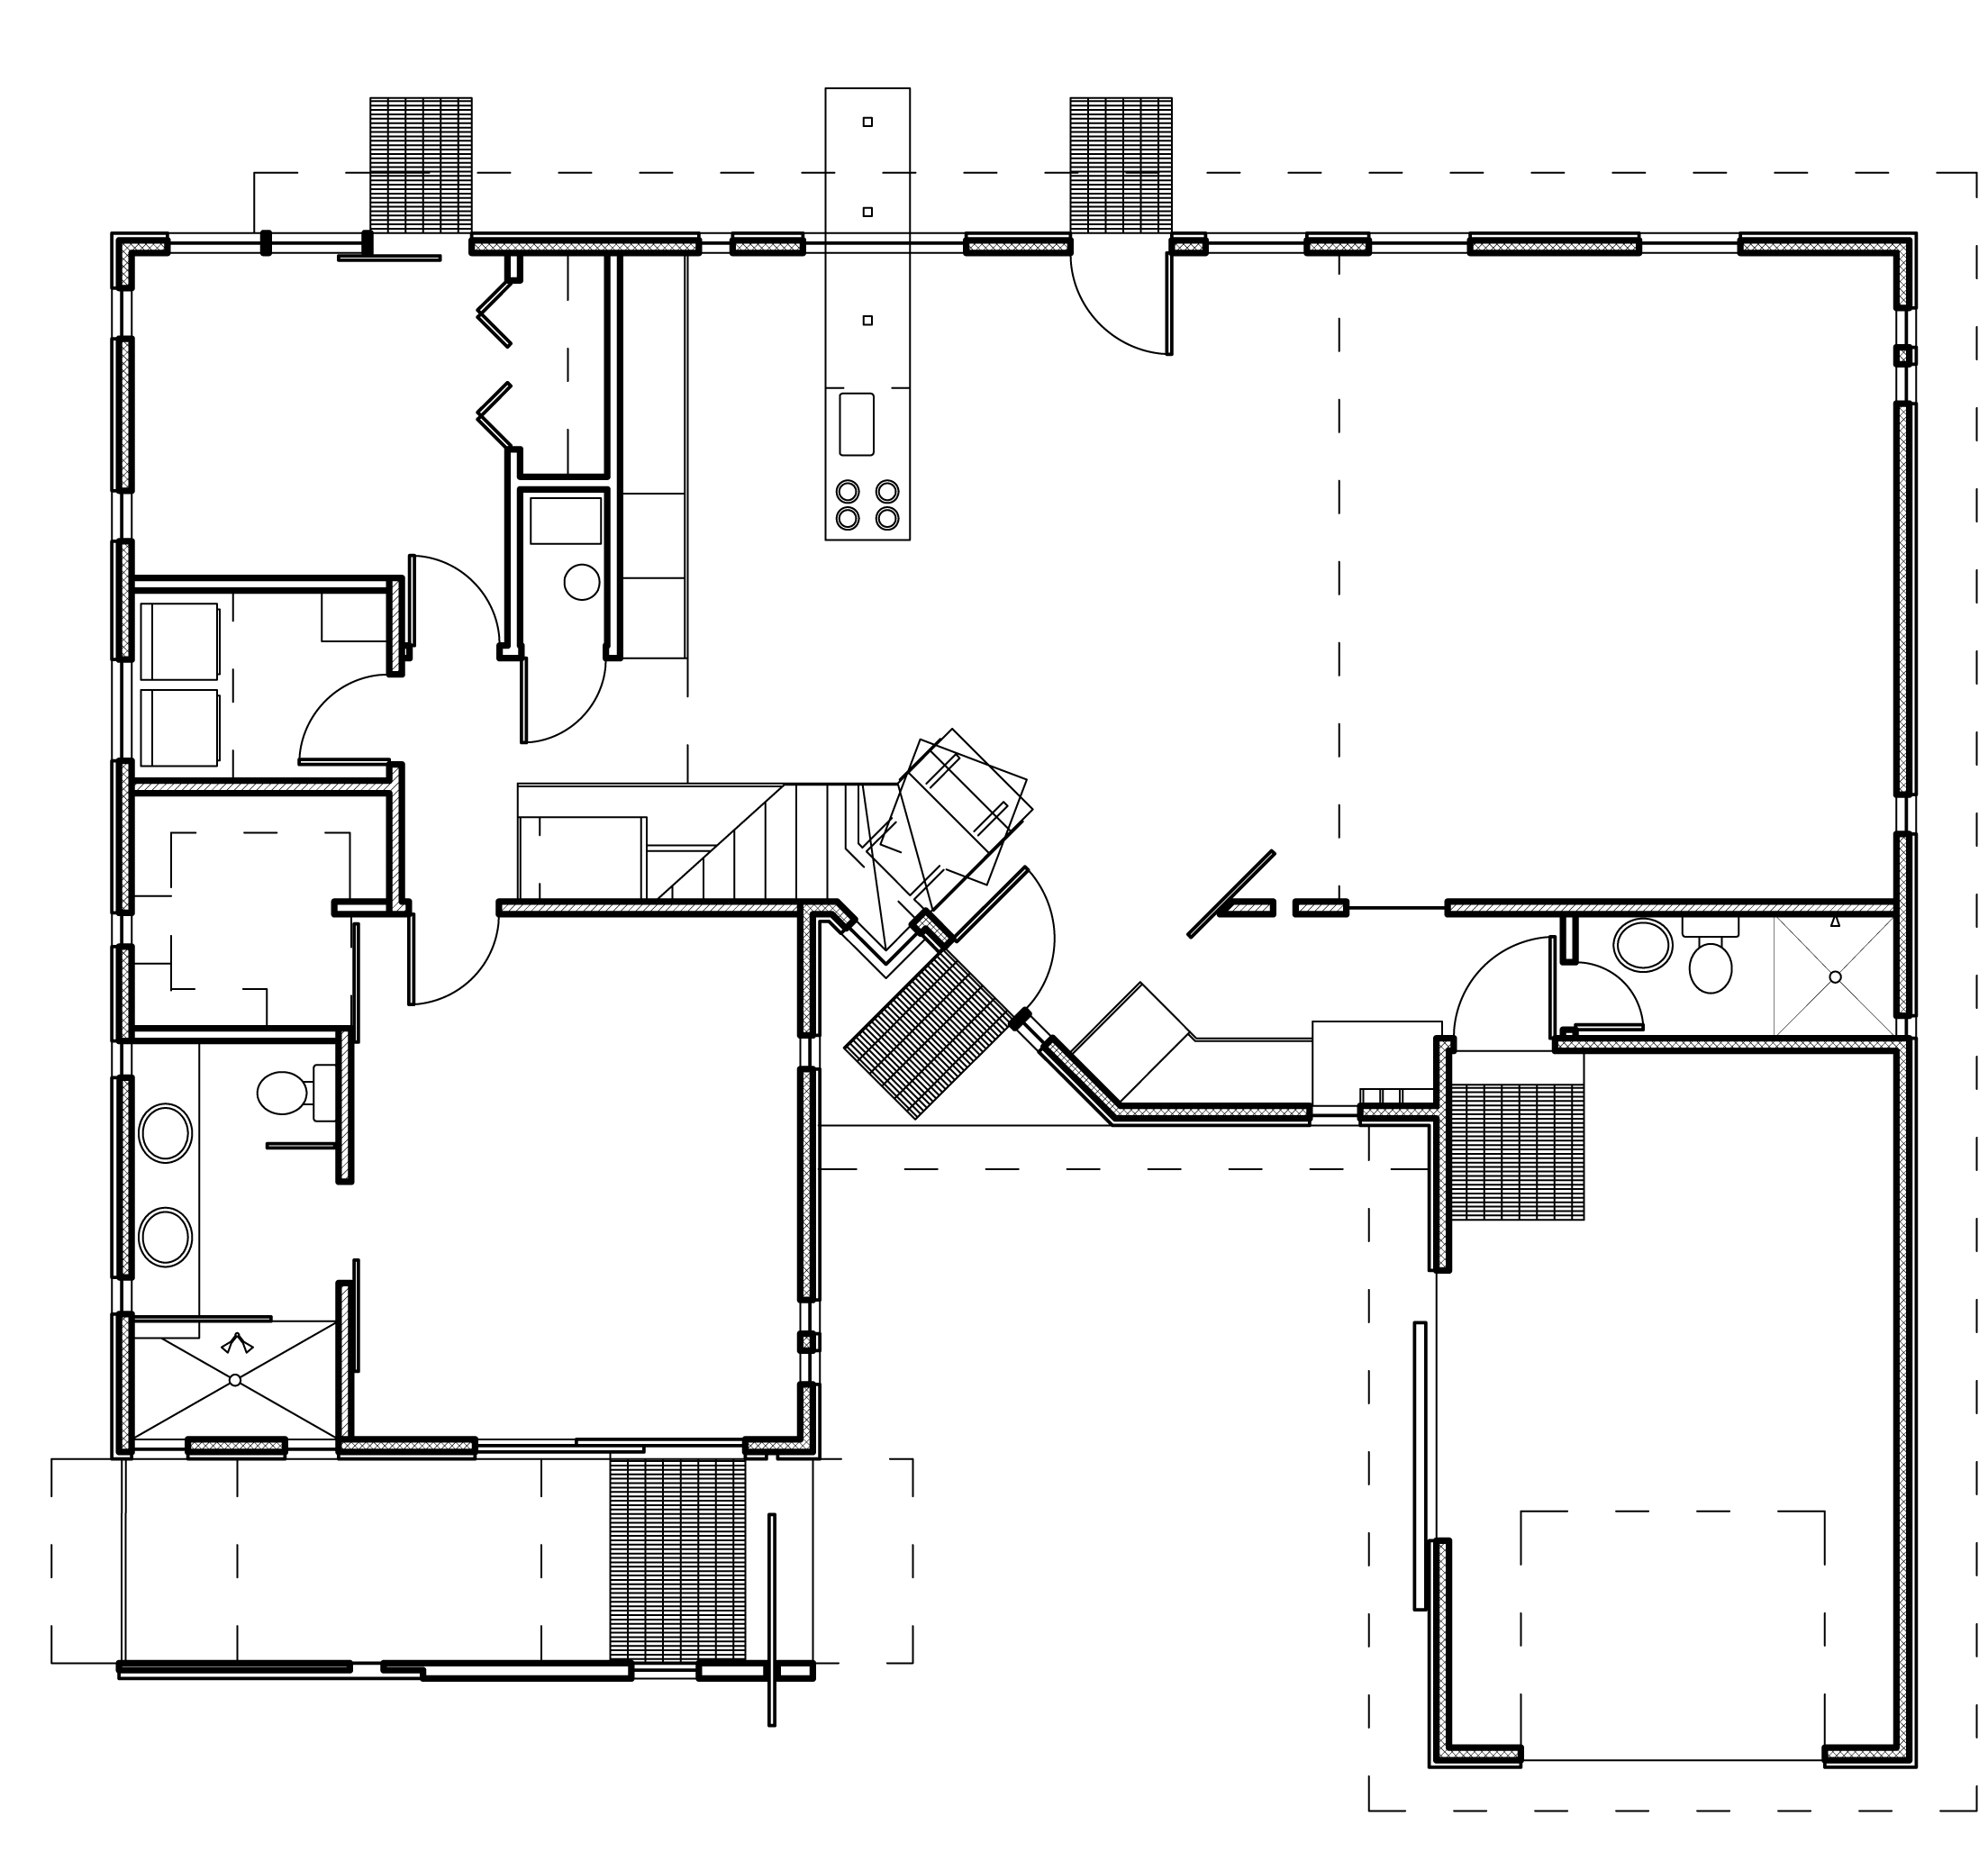 Modern house plans contemporary home designs floor plan 03 for Modern house floor plans